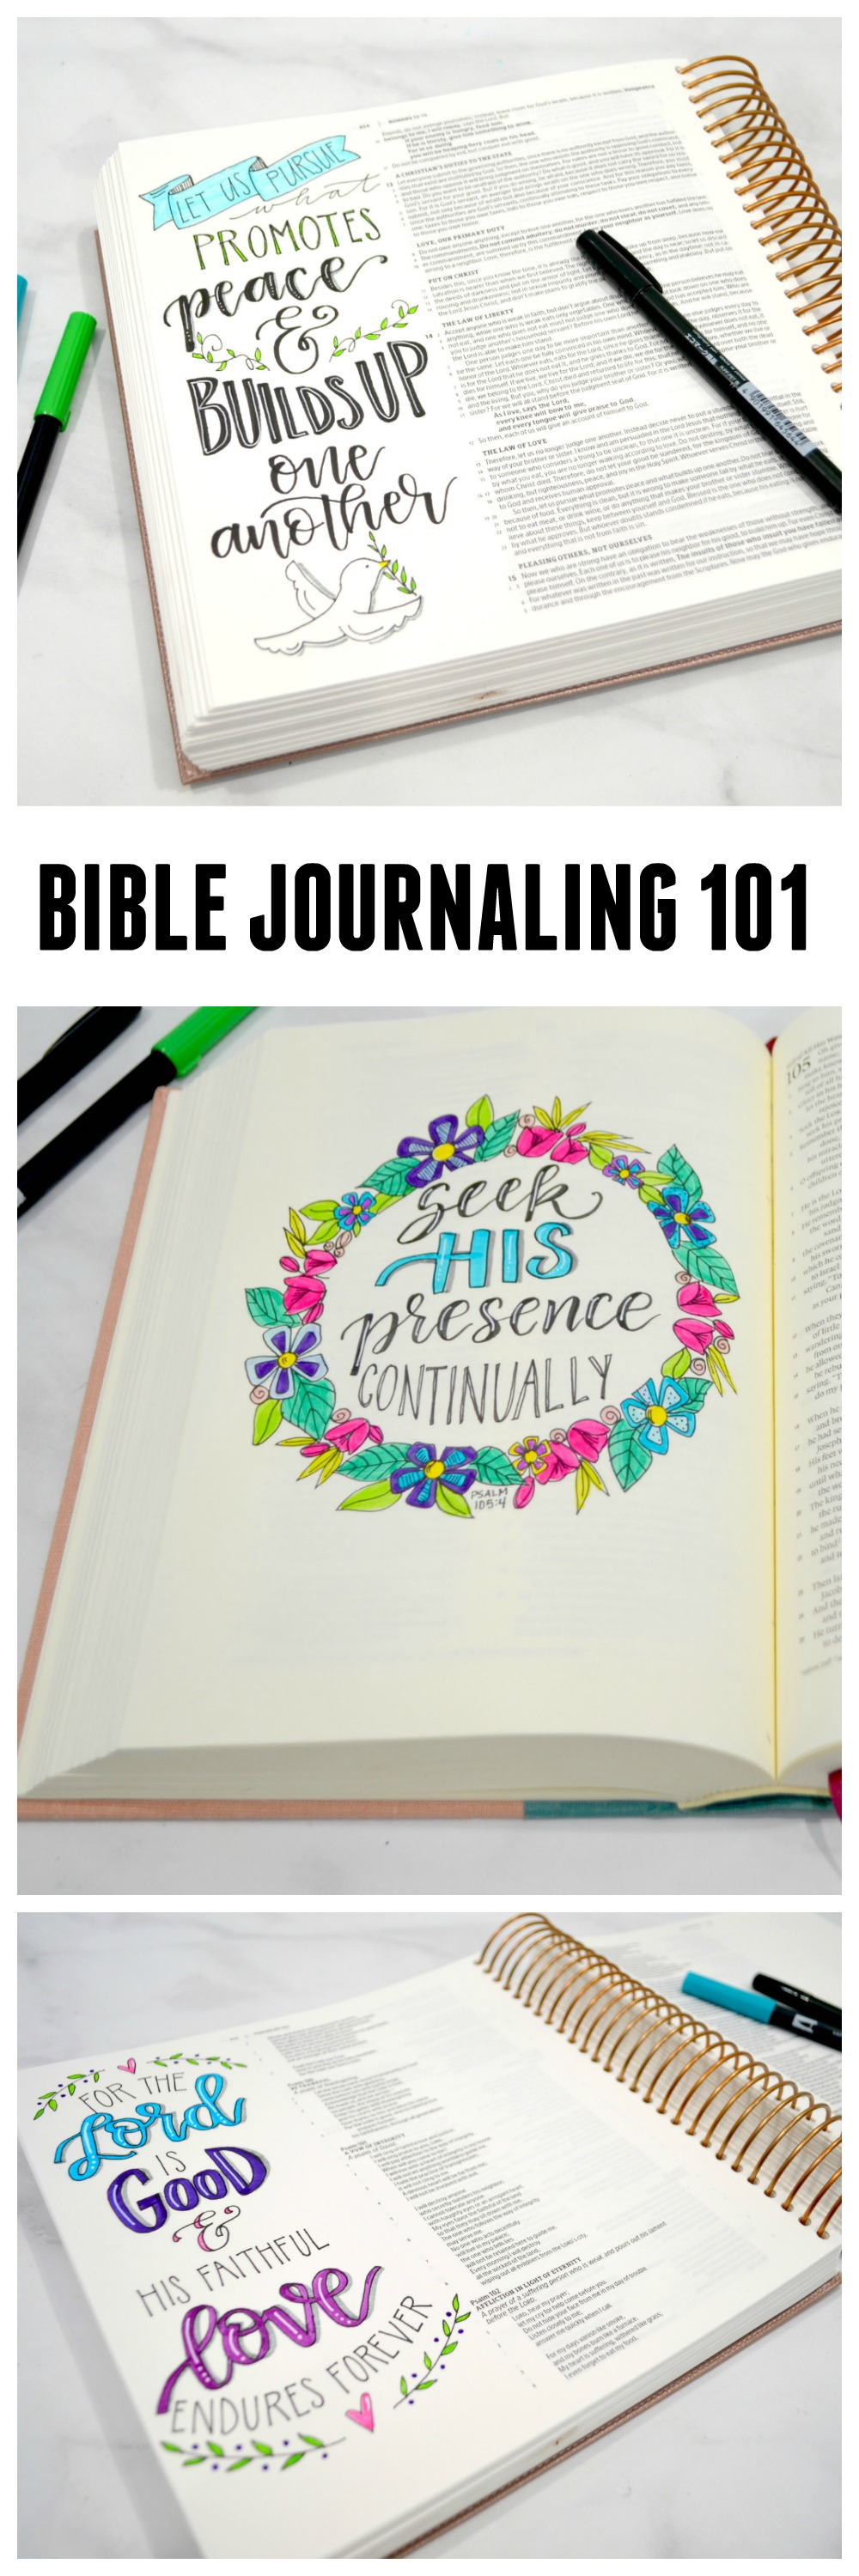 Getting Started with Bible Journaling #biblejournaling